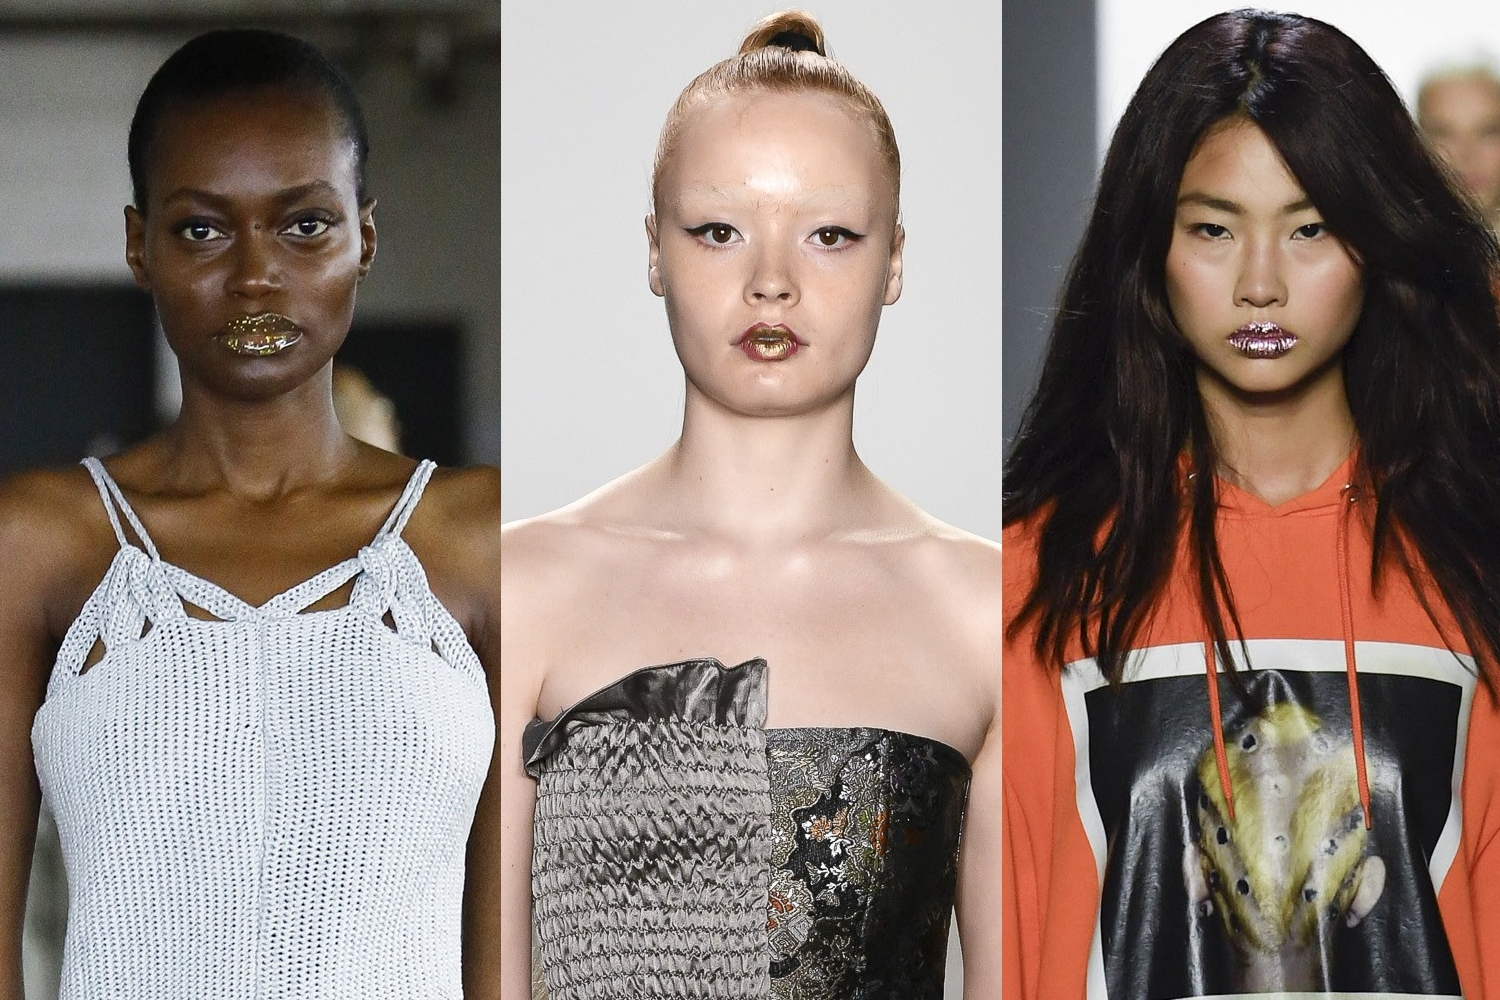 Makeup Looks at  Eckhaus Latta, Kim Shui, Jeremy Scott fashion runway shows